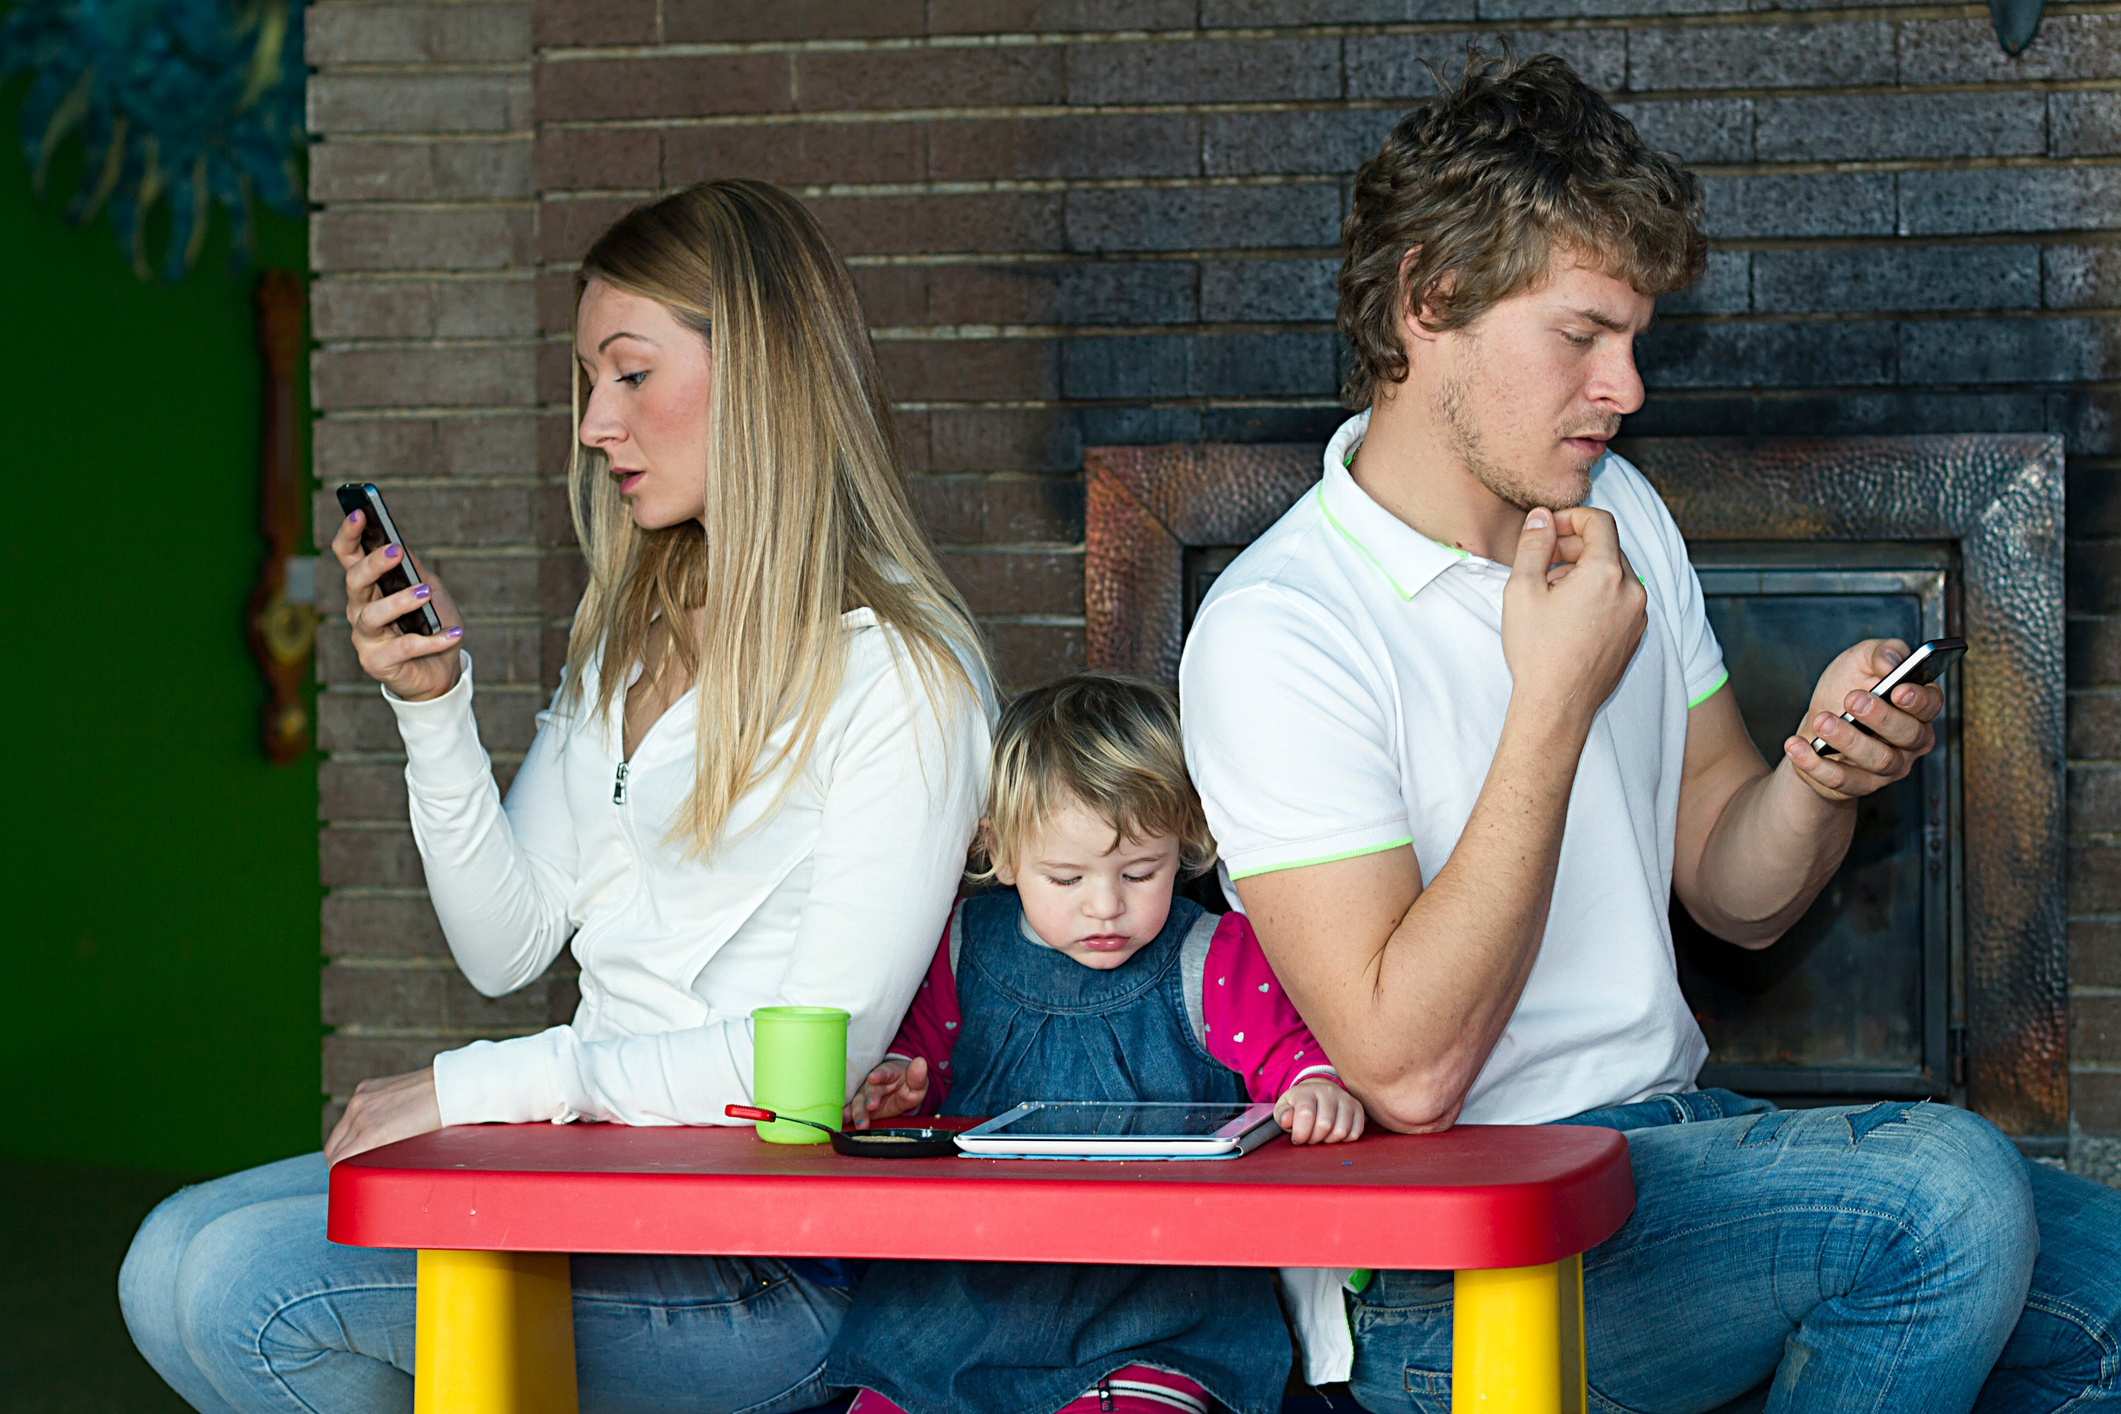 A couple locked into technology and ignoring their child